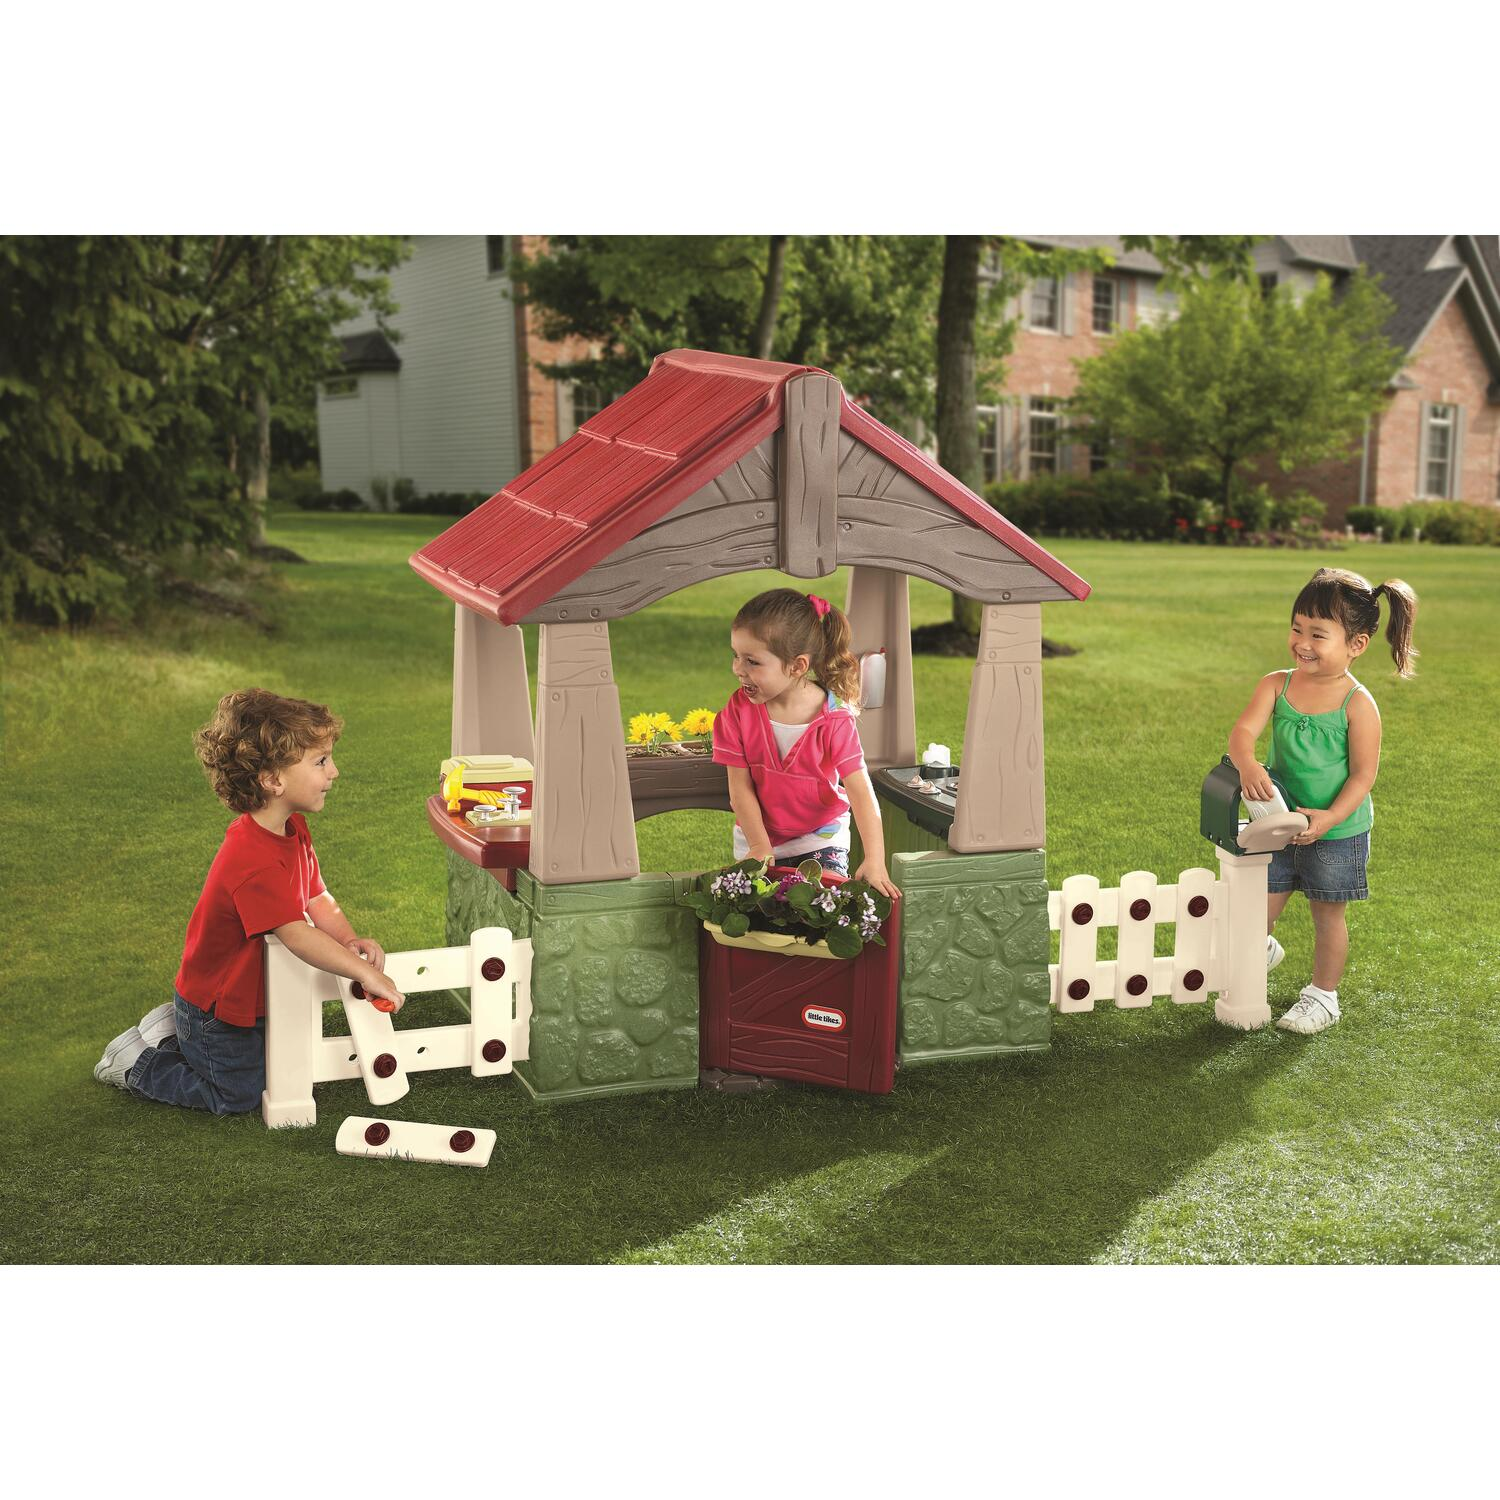 Little Tikes Home Garden Playhouse By Oj Commerce 615894